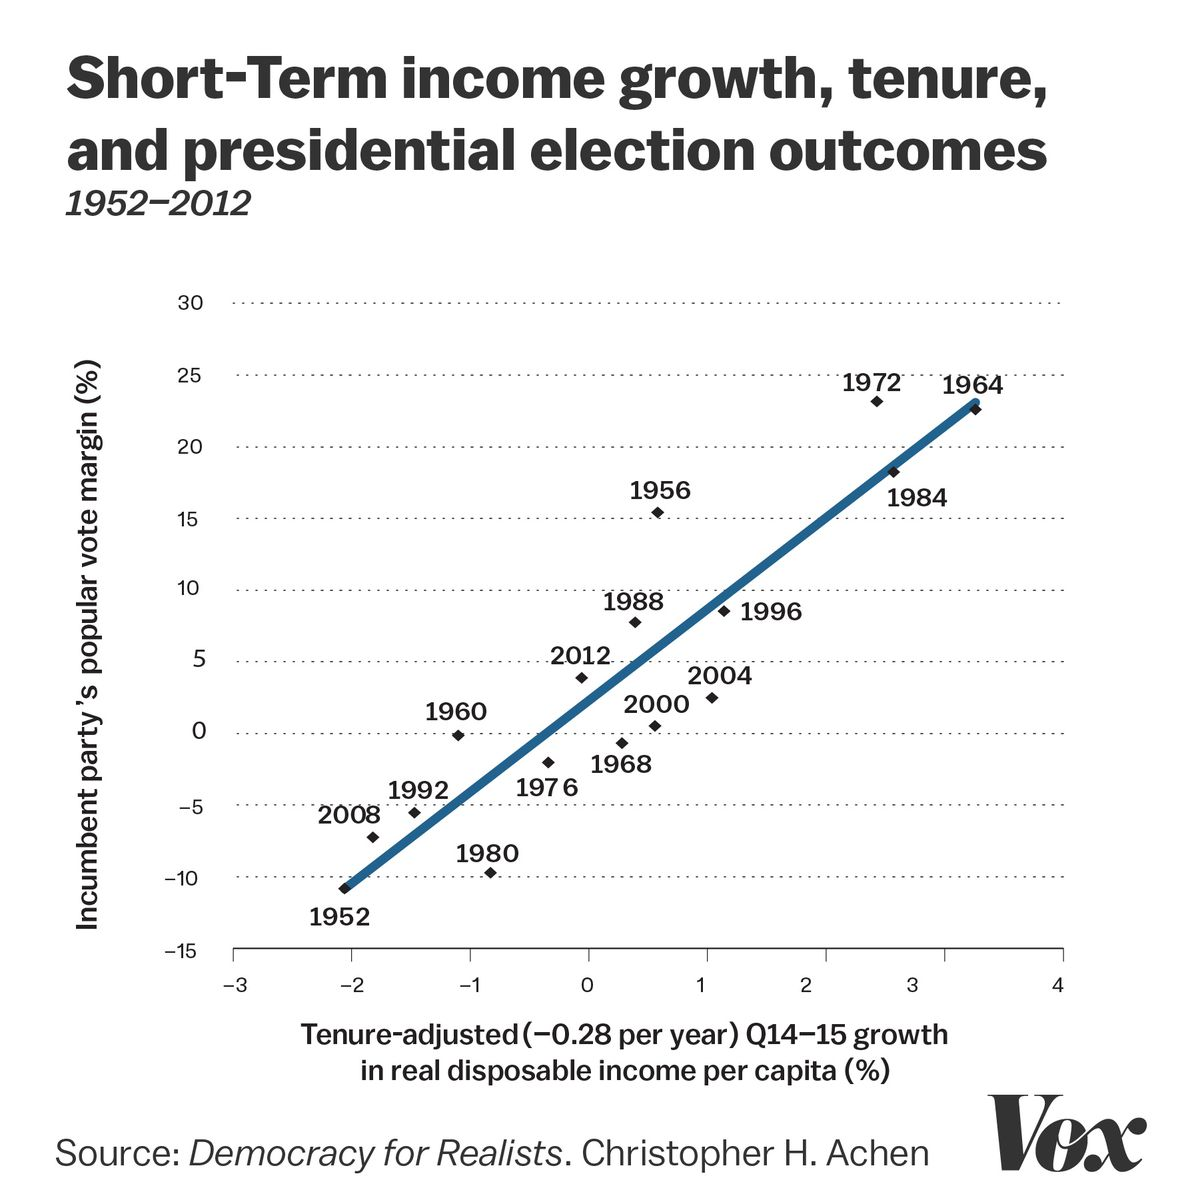 Two Eminent Political Scientists The Problem With Democracy Is Claim 1 A Short Circuit Testing System For Generating Heres Graphical Summary Of Historical Relationship Between Term Income Growth Incumbent Party Tenure And Presidential Election Outcomes